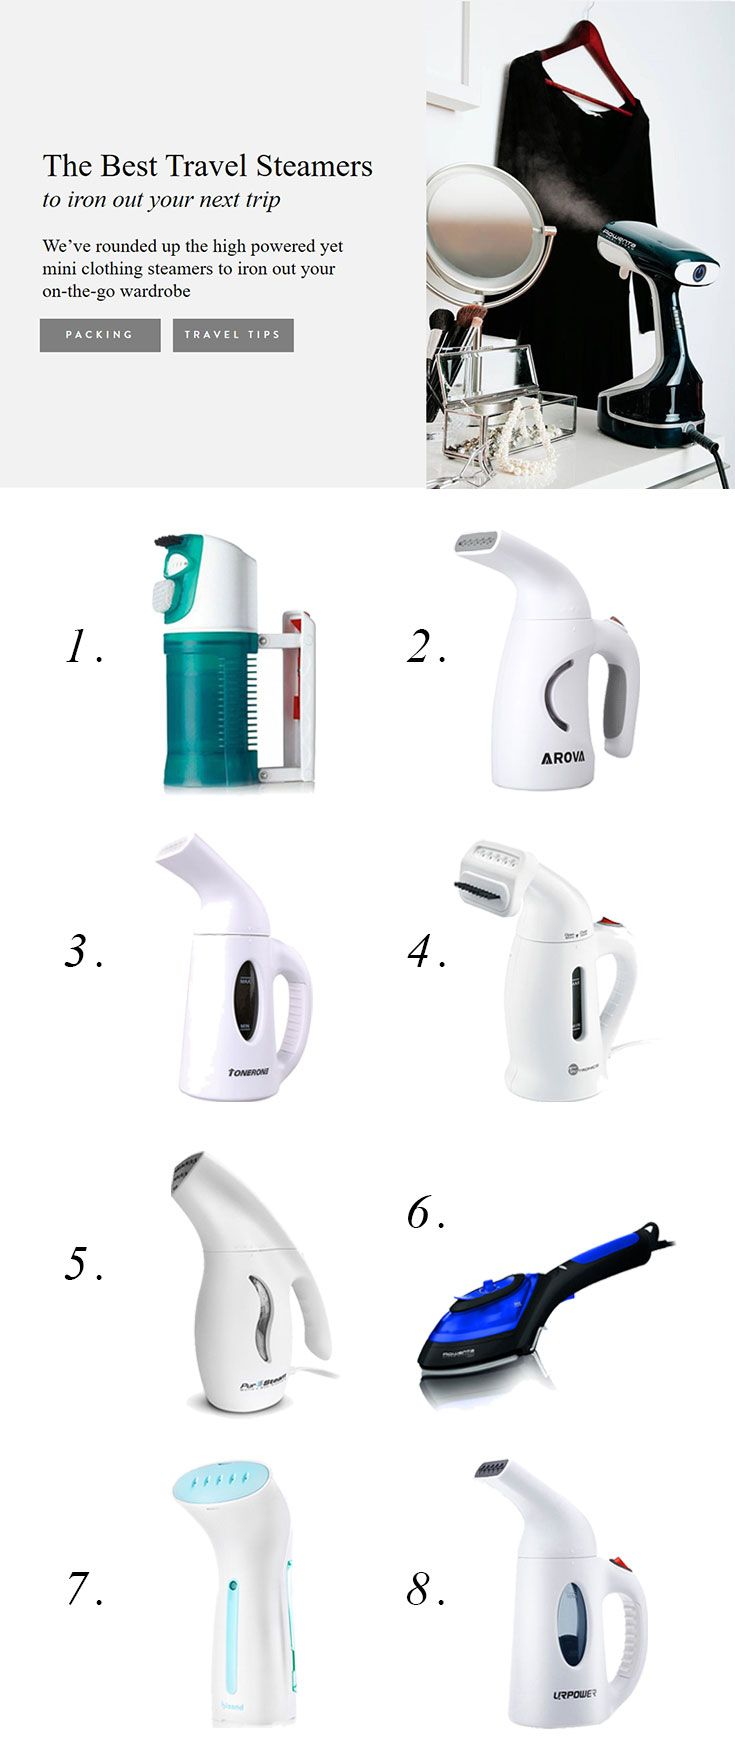 Stay wrinkle free all vacation long with a garment steamer. Read our reviews of the most popular steam irons to find the best travel steamer for your trip!